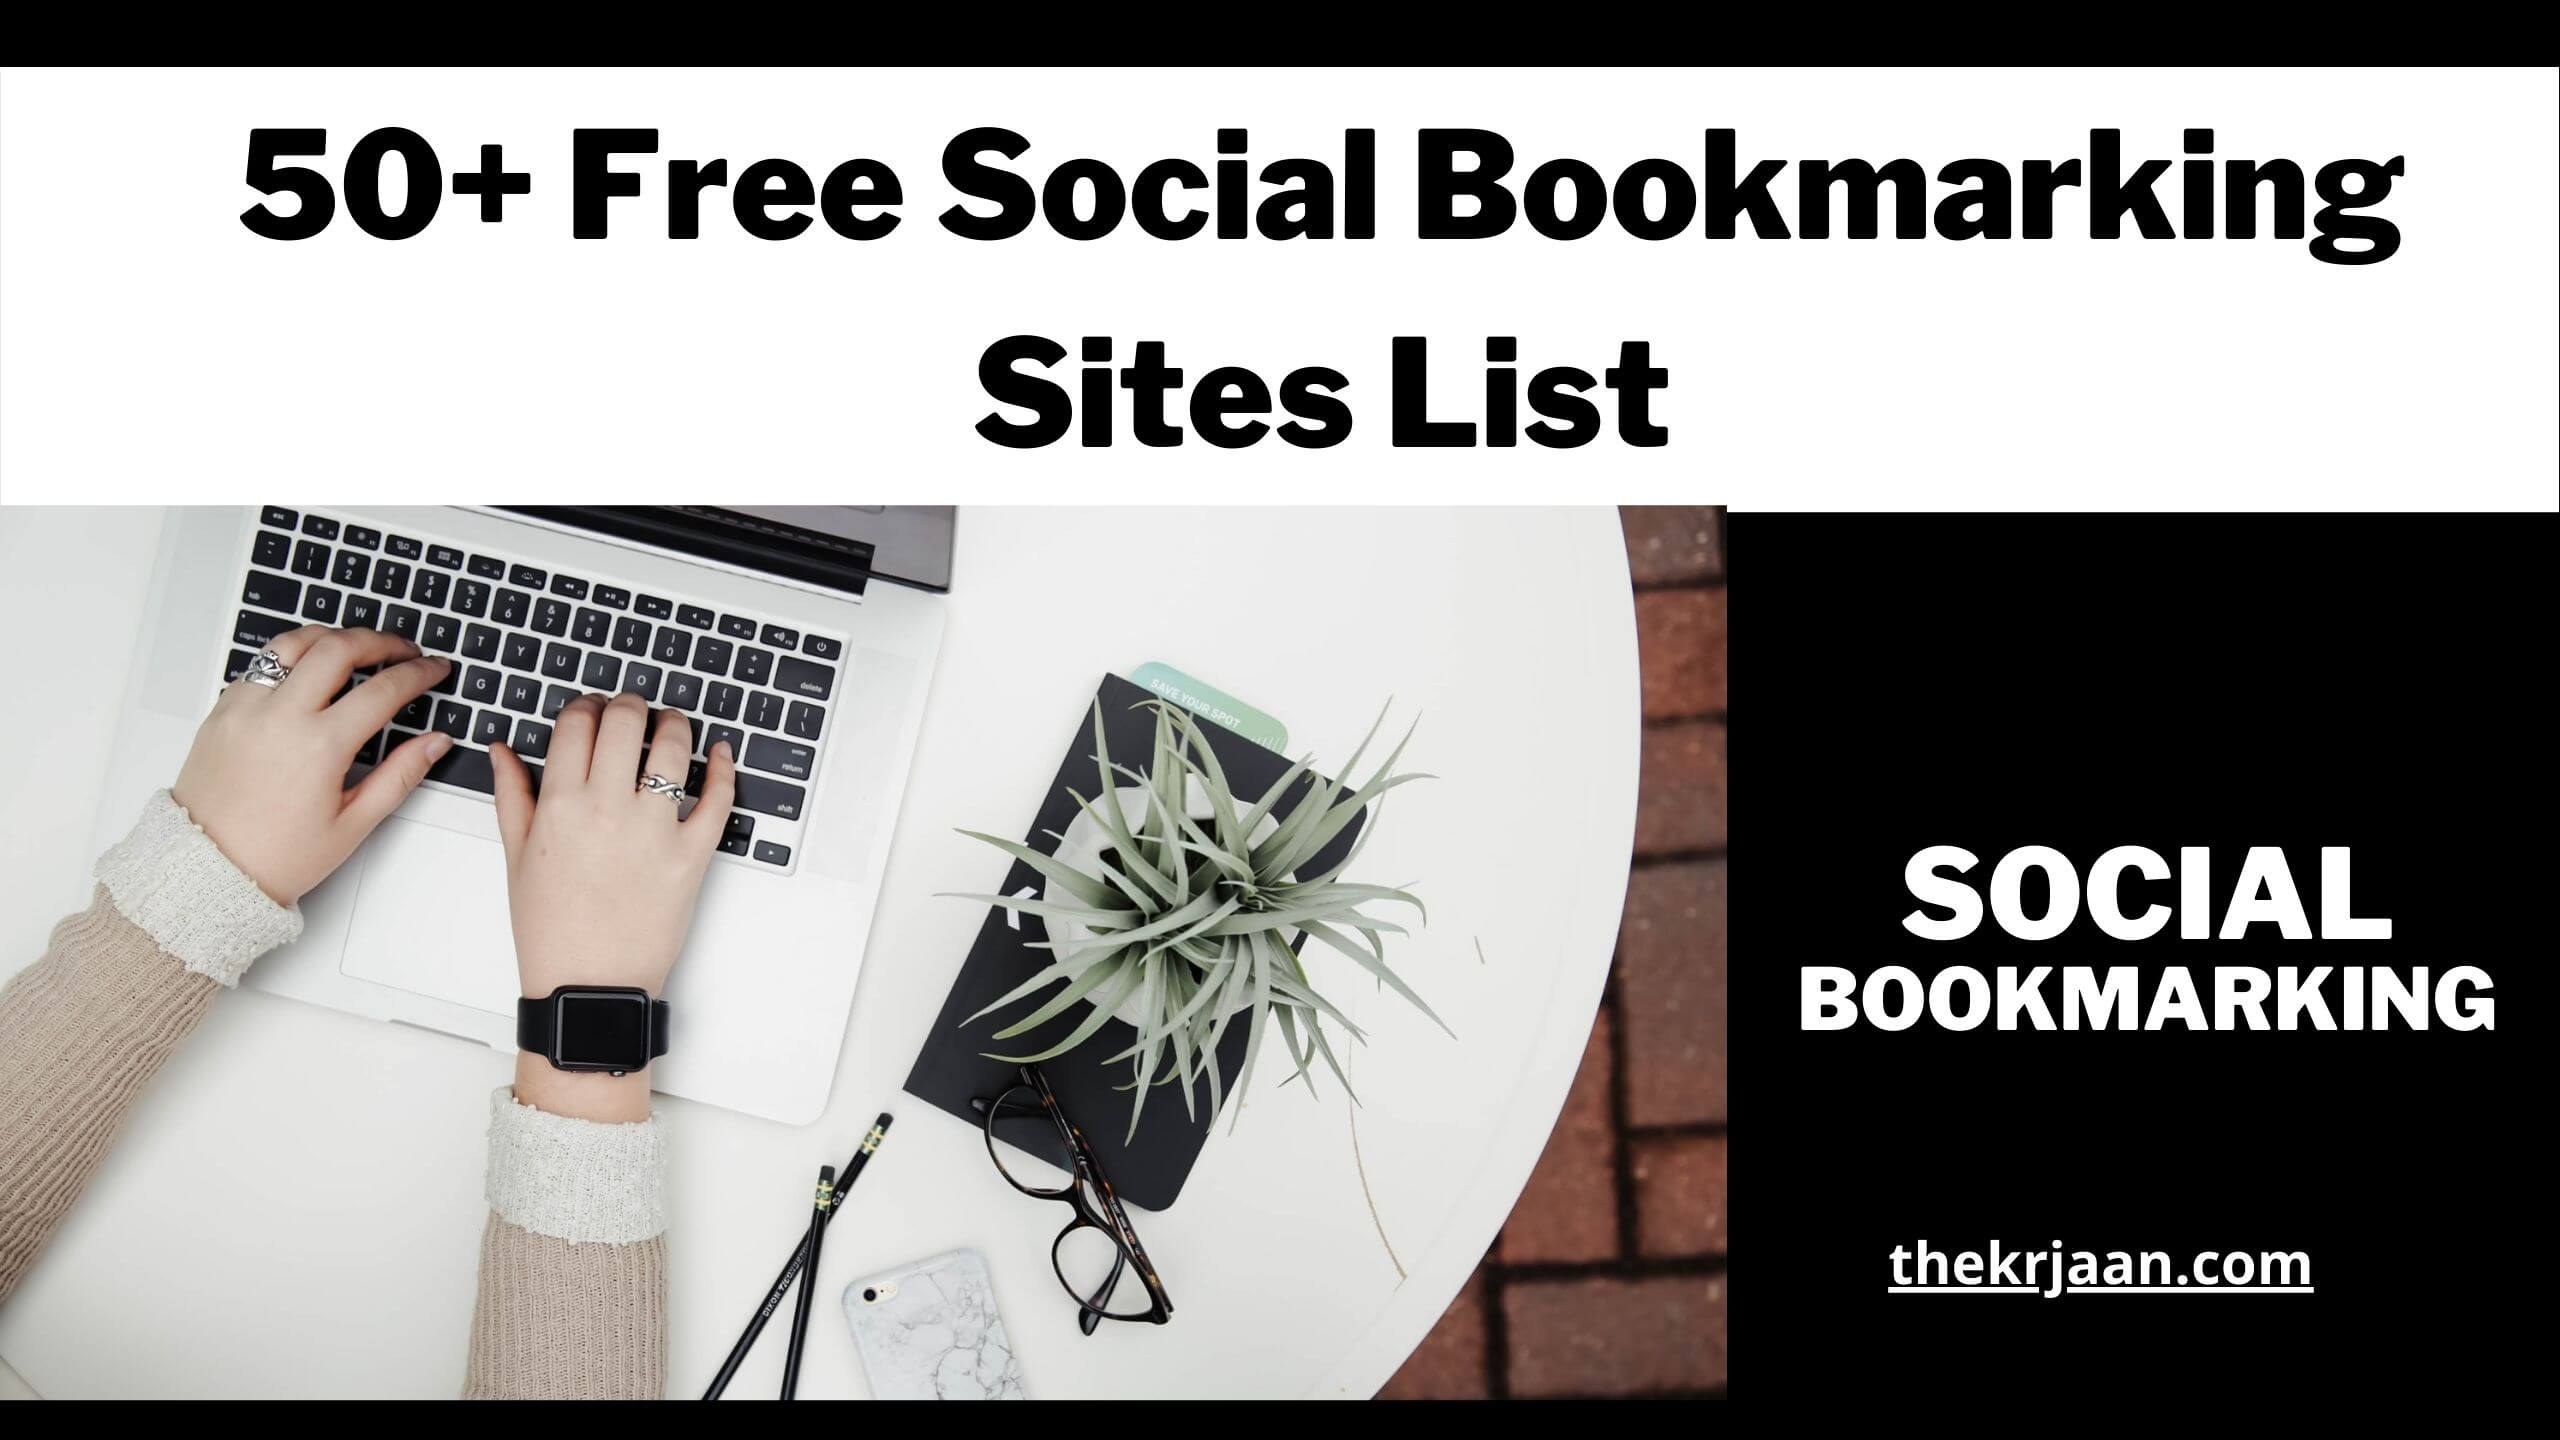 50+ Free Social Bookmarking Sites List 2021 For Best SEO